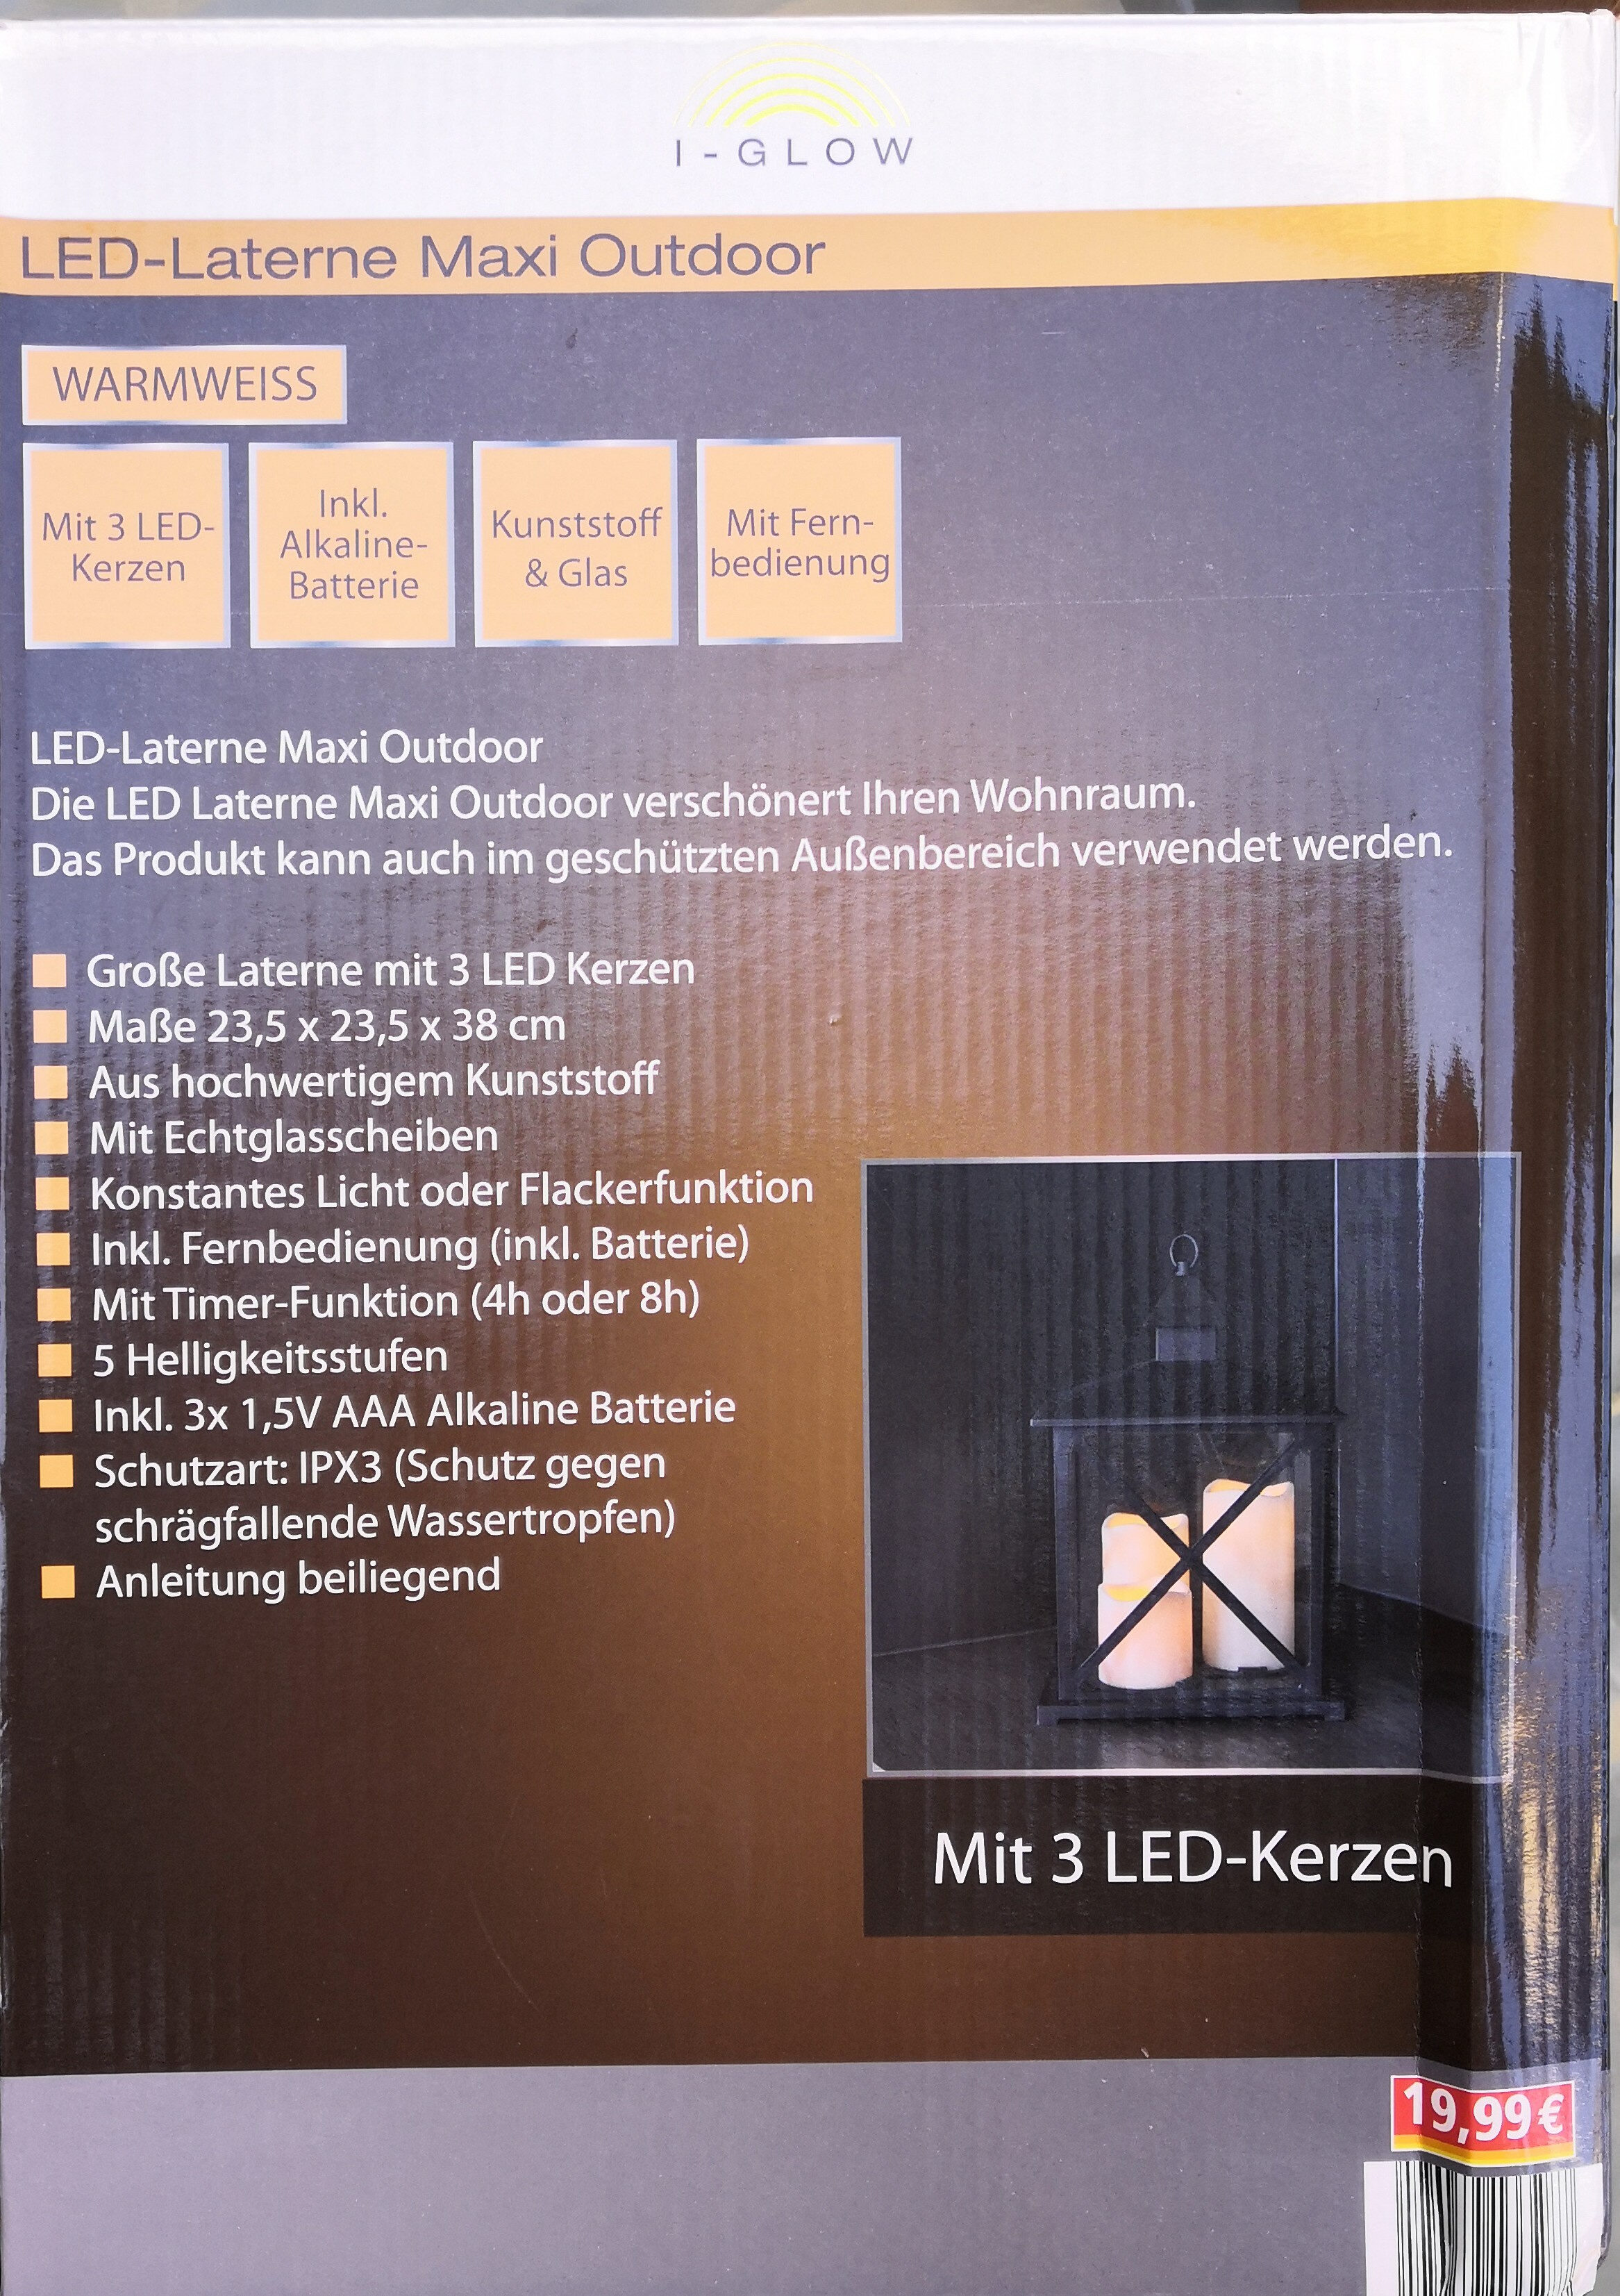 I-Glow LED-Laterne Maxi Outdoor - Ingredients - de